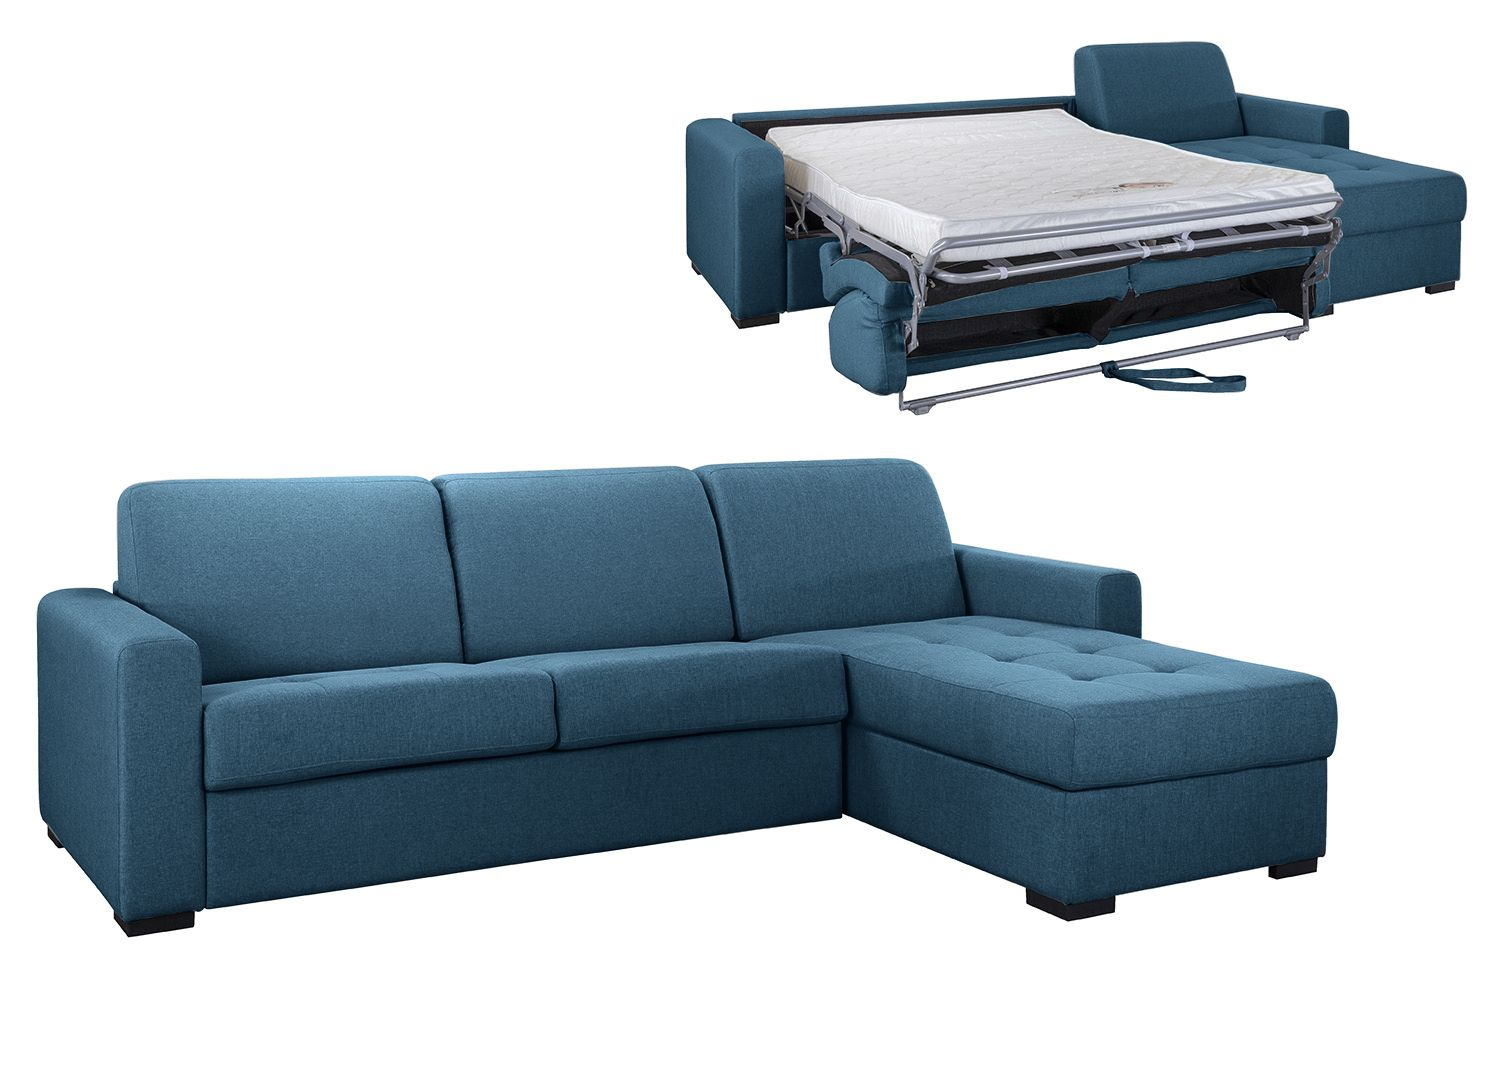 Angle Convertible pour usage QUOTIDIEN « ANGELICA» -  COUCHAGE 140cm